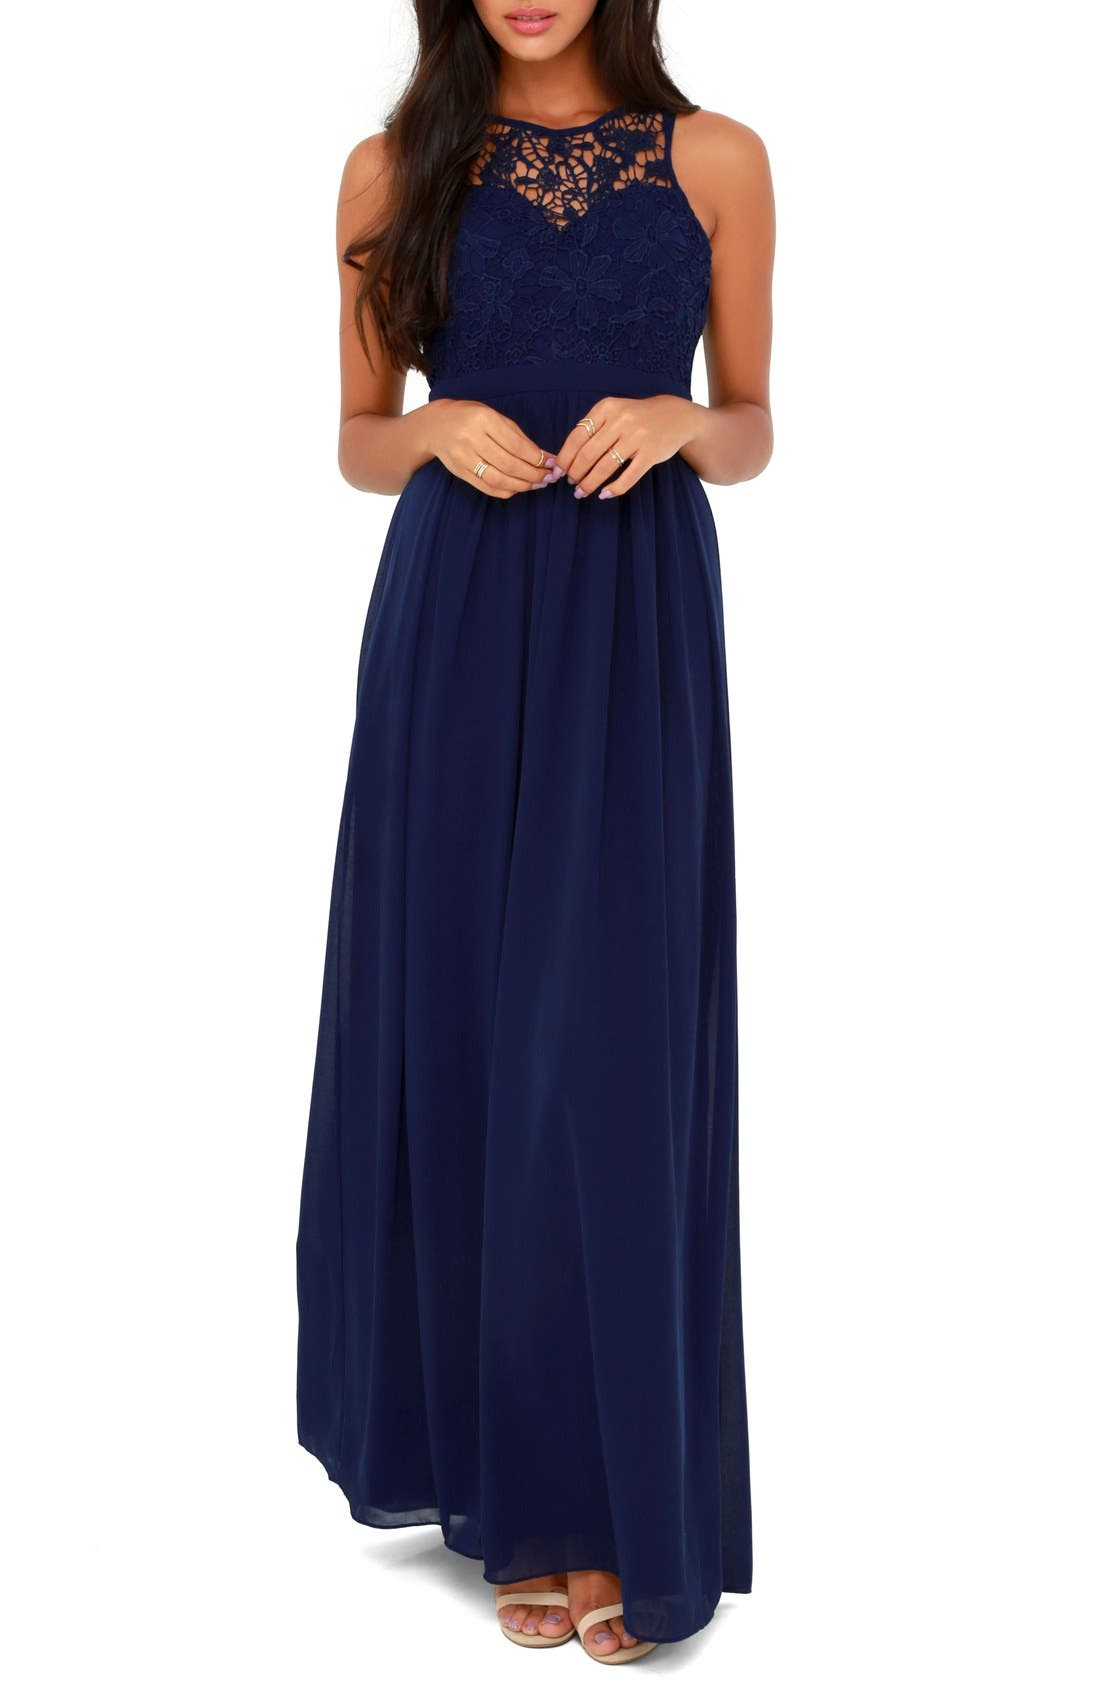 Alternate Image 1 Selected - Lulus Lace Overlay Sweetheart Chiffon Gown